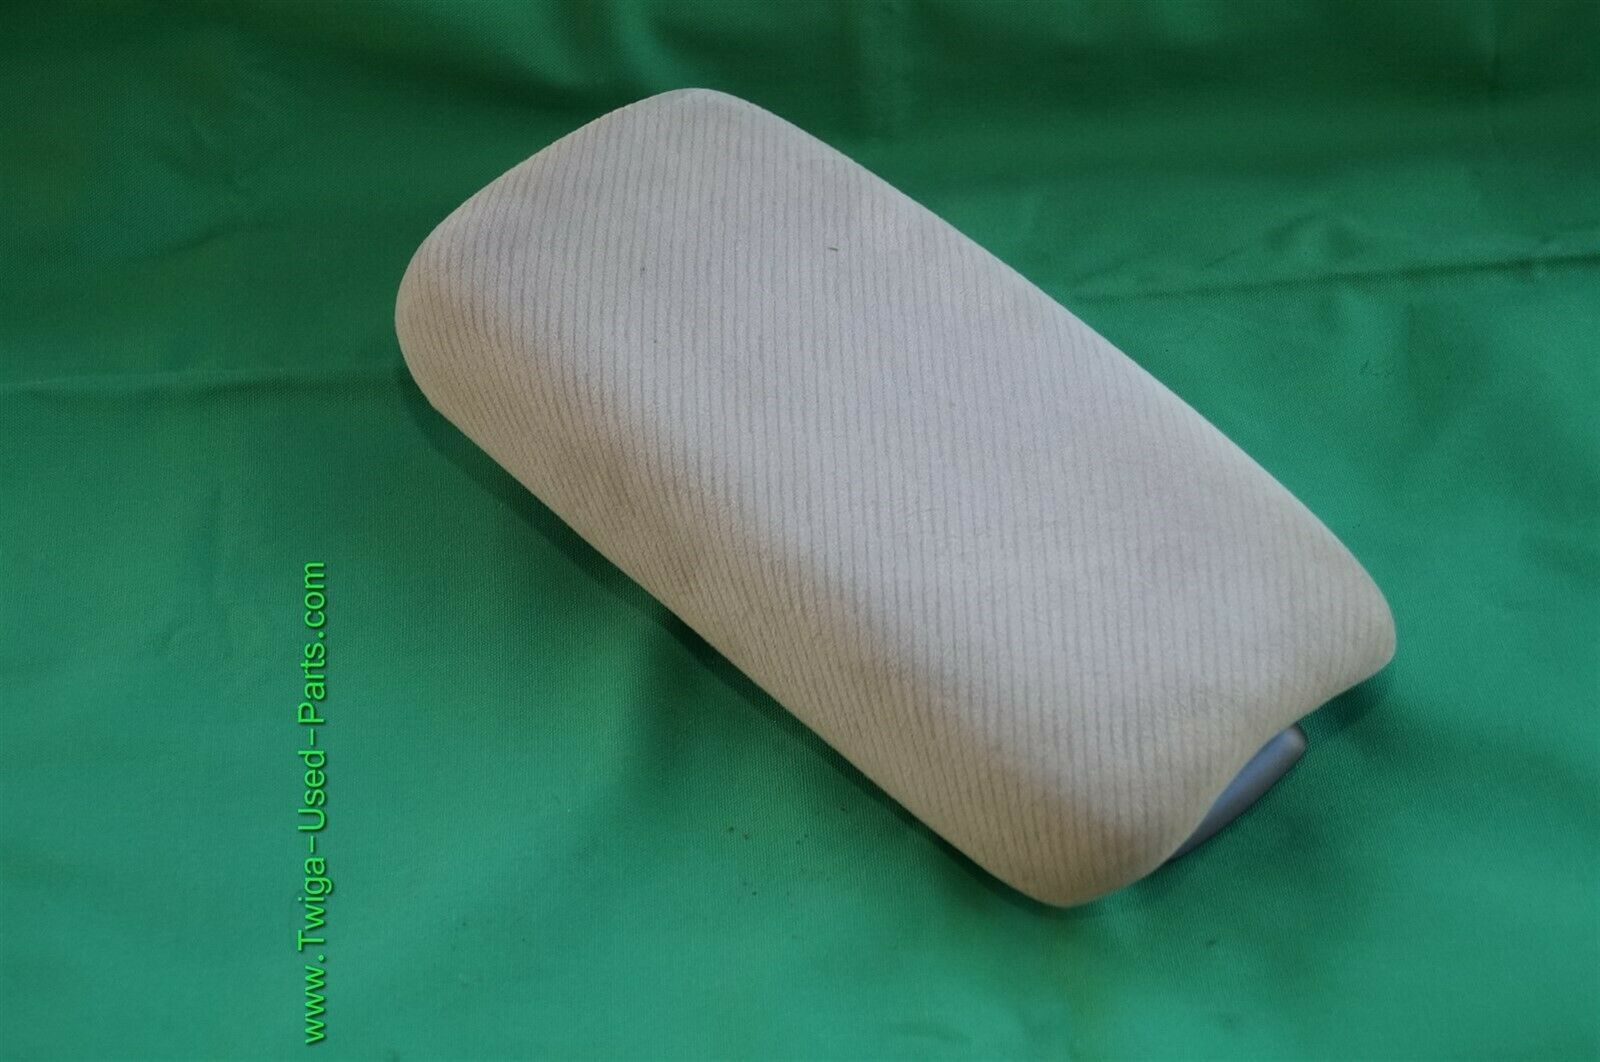 Honda Civic Sliding Armrest Center Console Lid Cover 06-11 FABRIC TAUPE